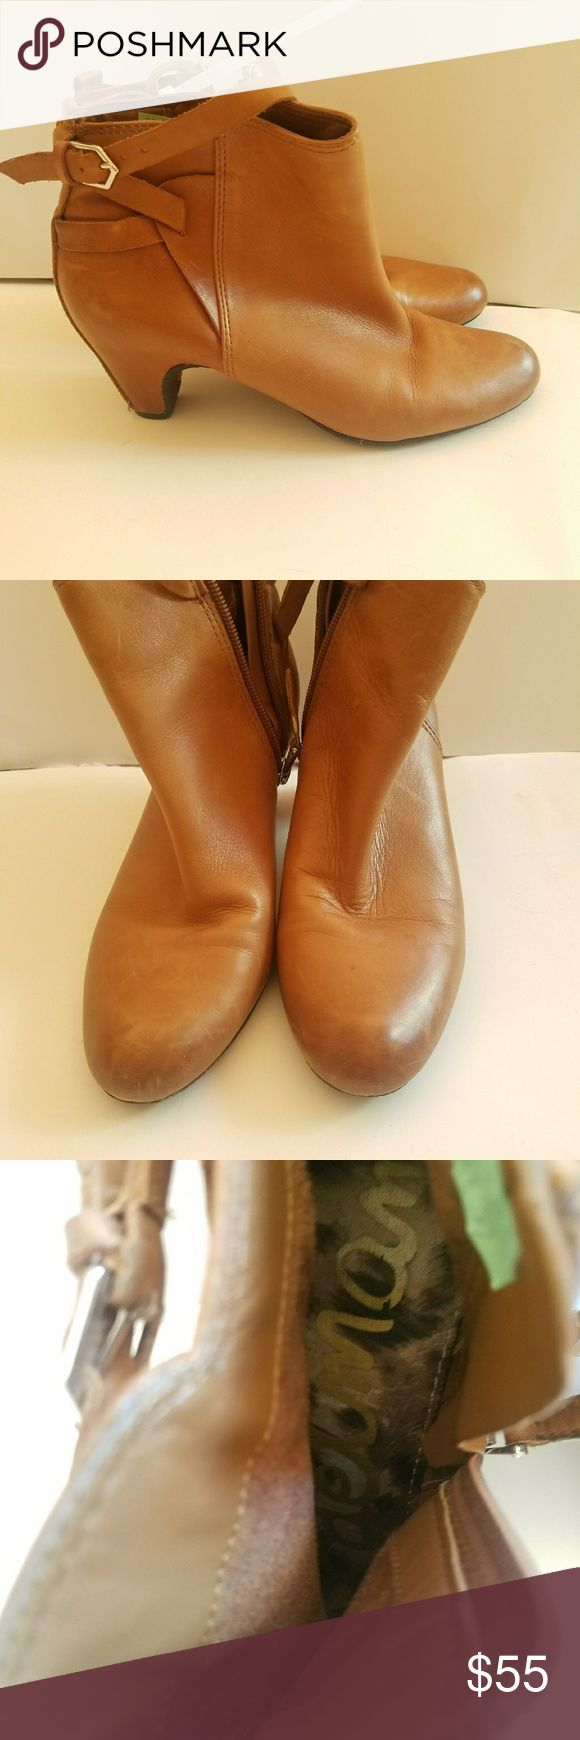 Sam Edleman Booties These are super soft leather with a rubber skid proof bottom.  Excellent Sam Edlenam craftsmanship.  Low heal to give you just the right amount of lift. :). Sam Edelman Shoes Ankle Boots & Booties